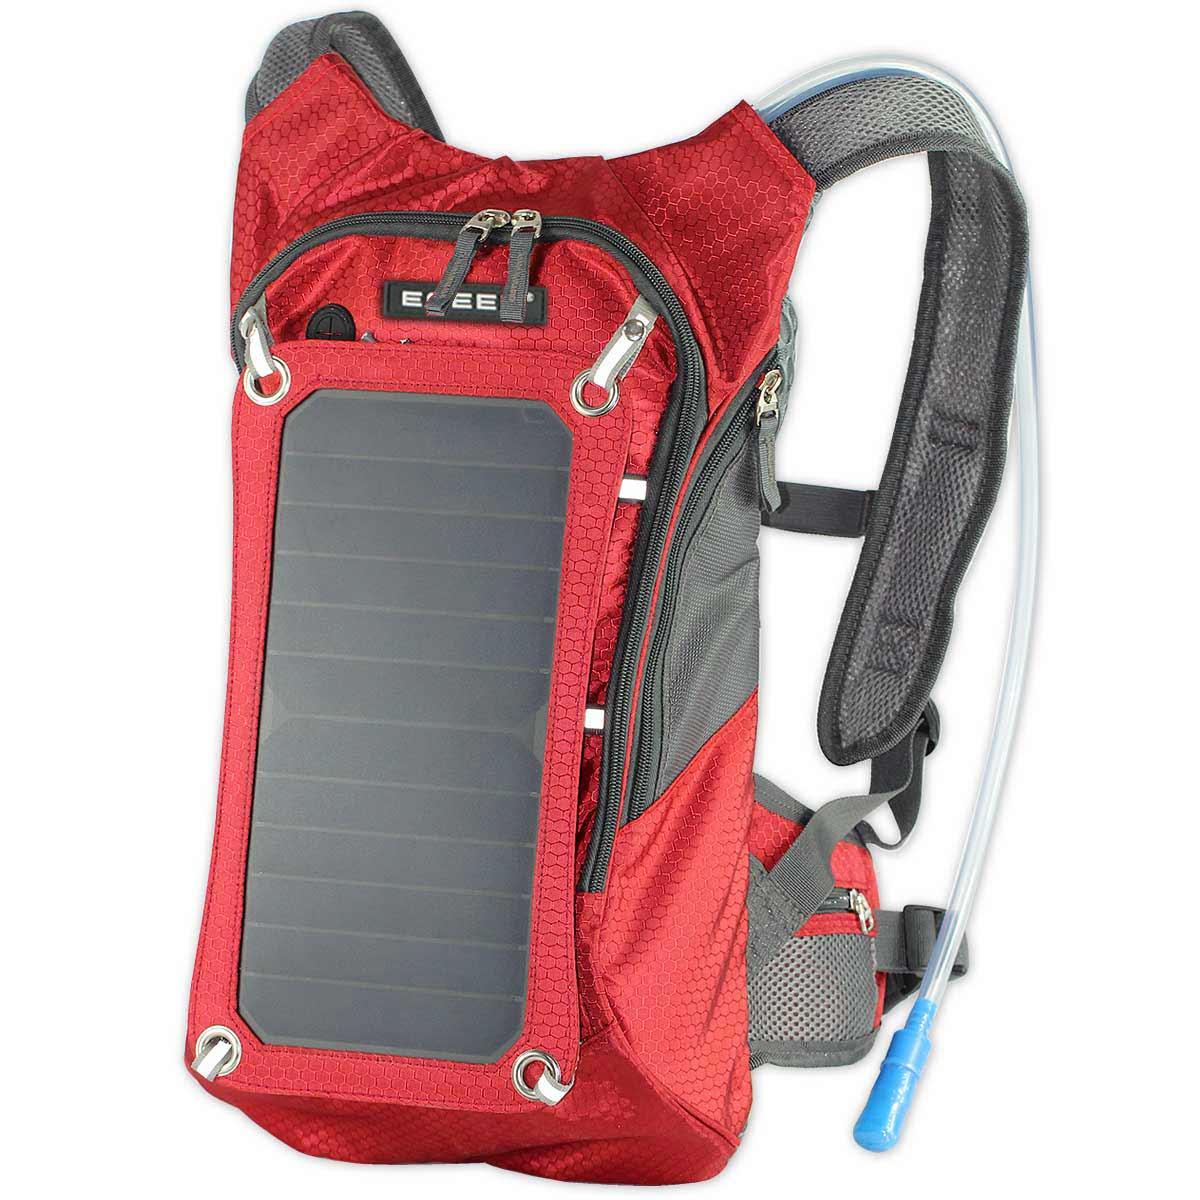 Hydration Backpack With 1 8l Bladder Bag Ece 611red